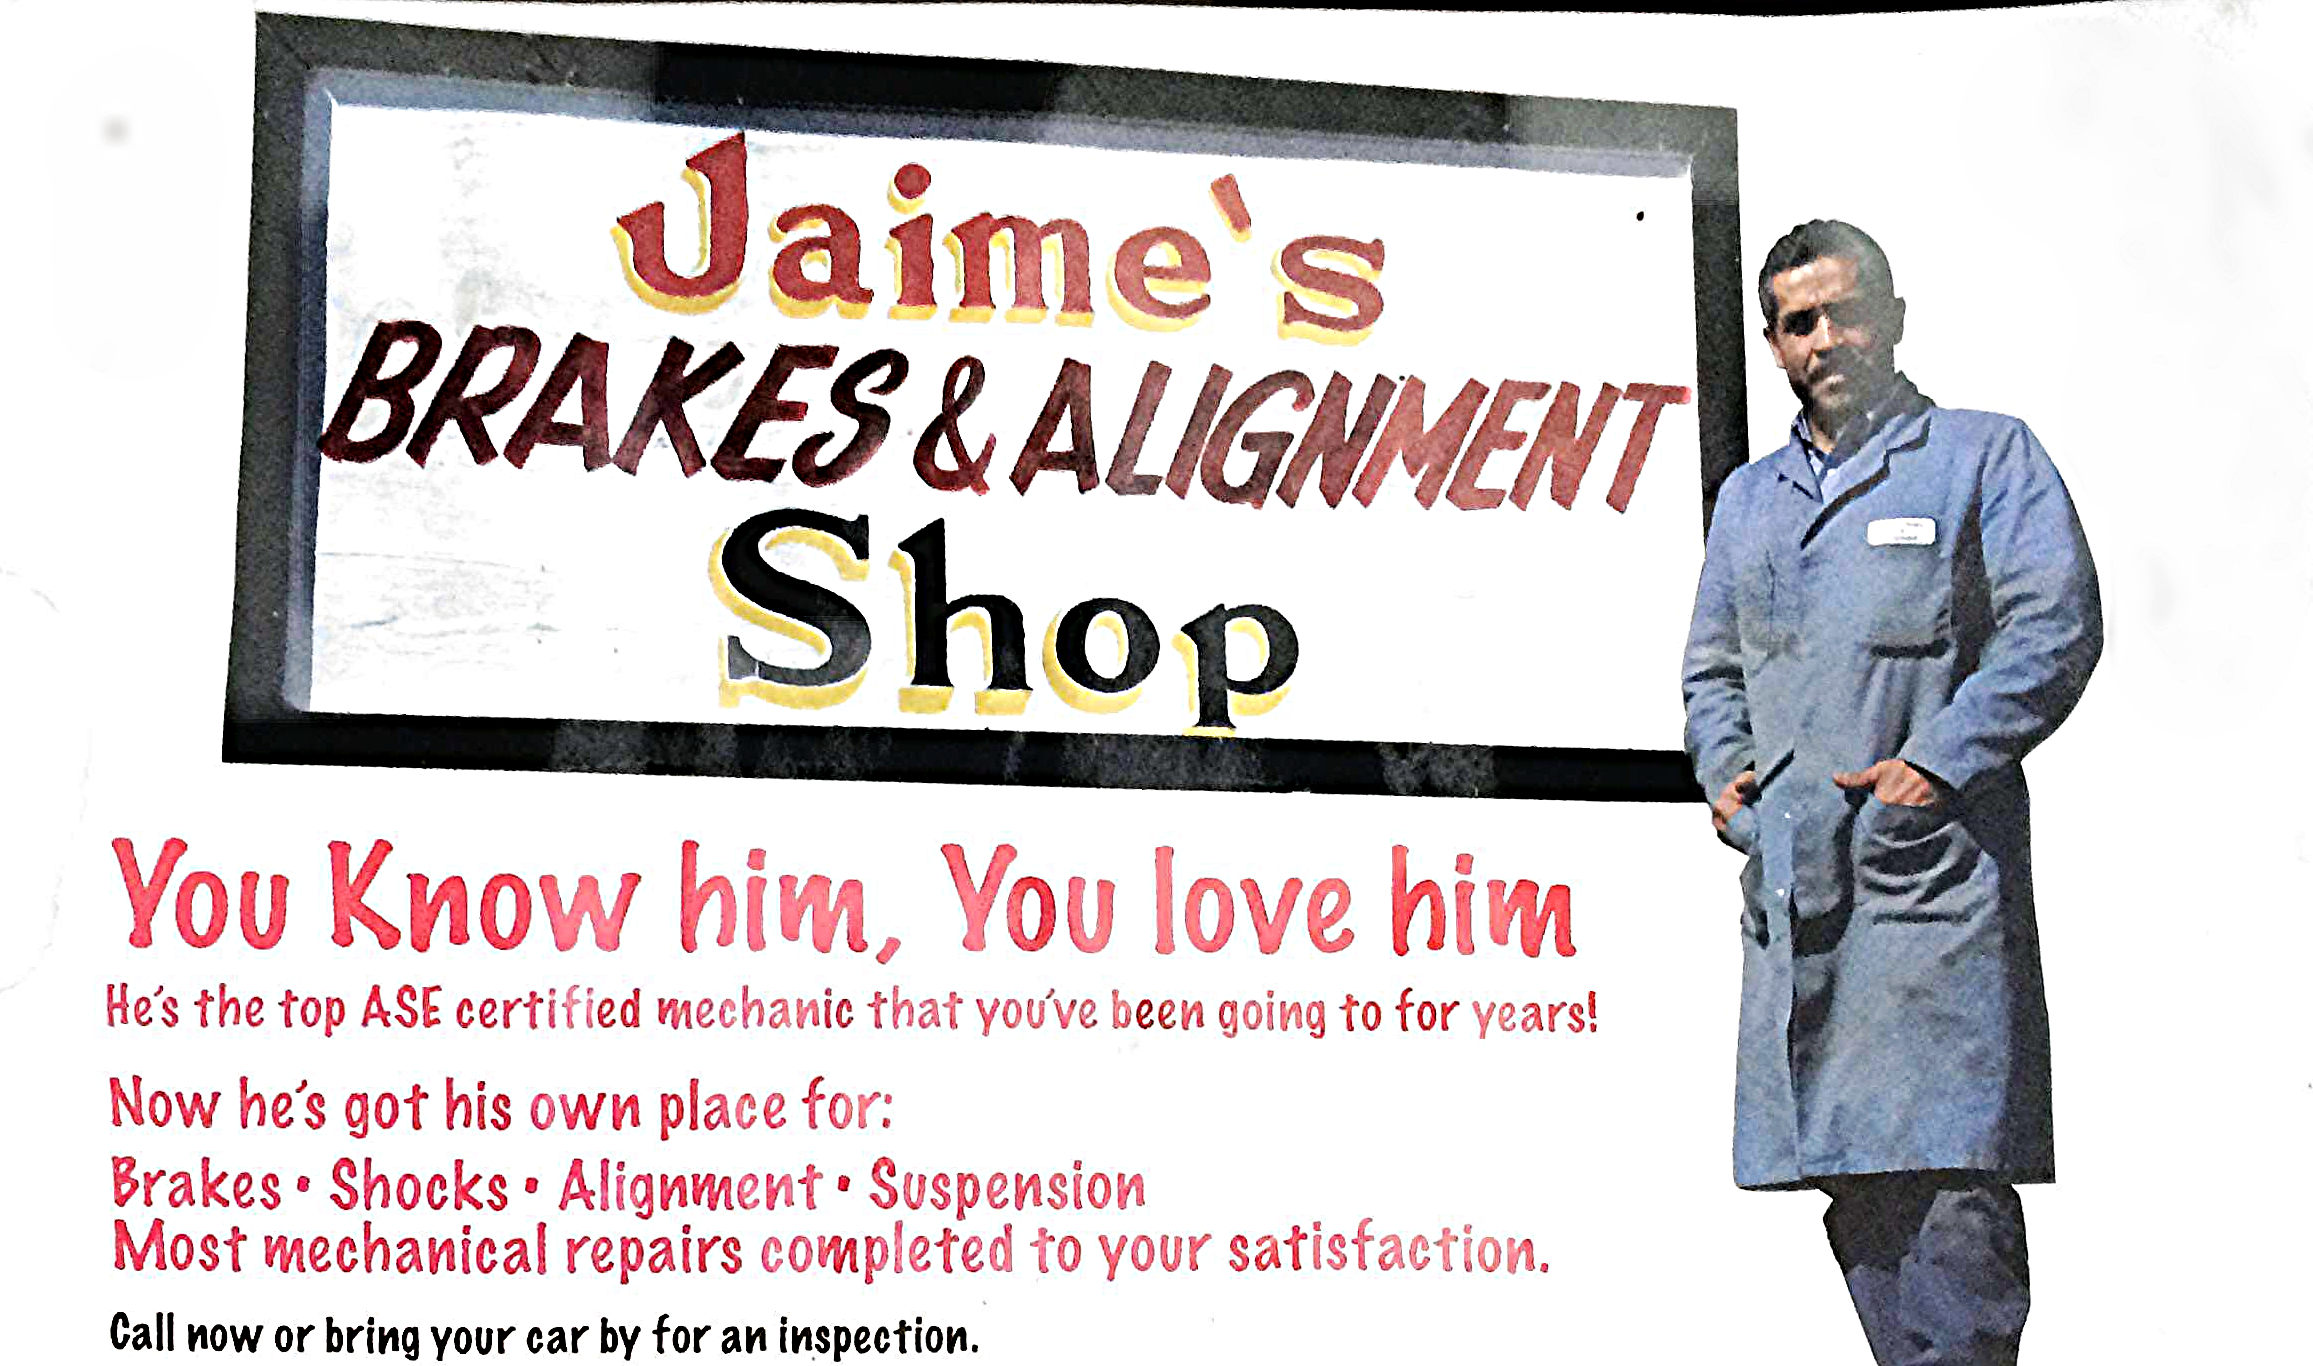 Jaime's Brakes and Alignment